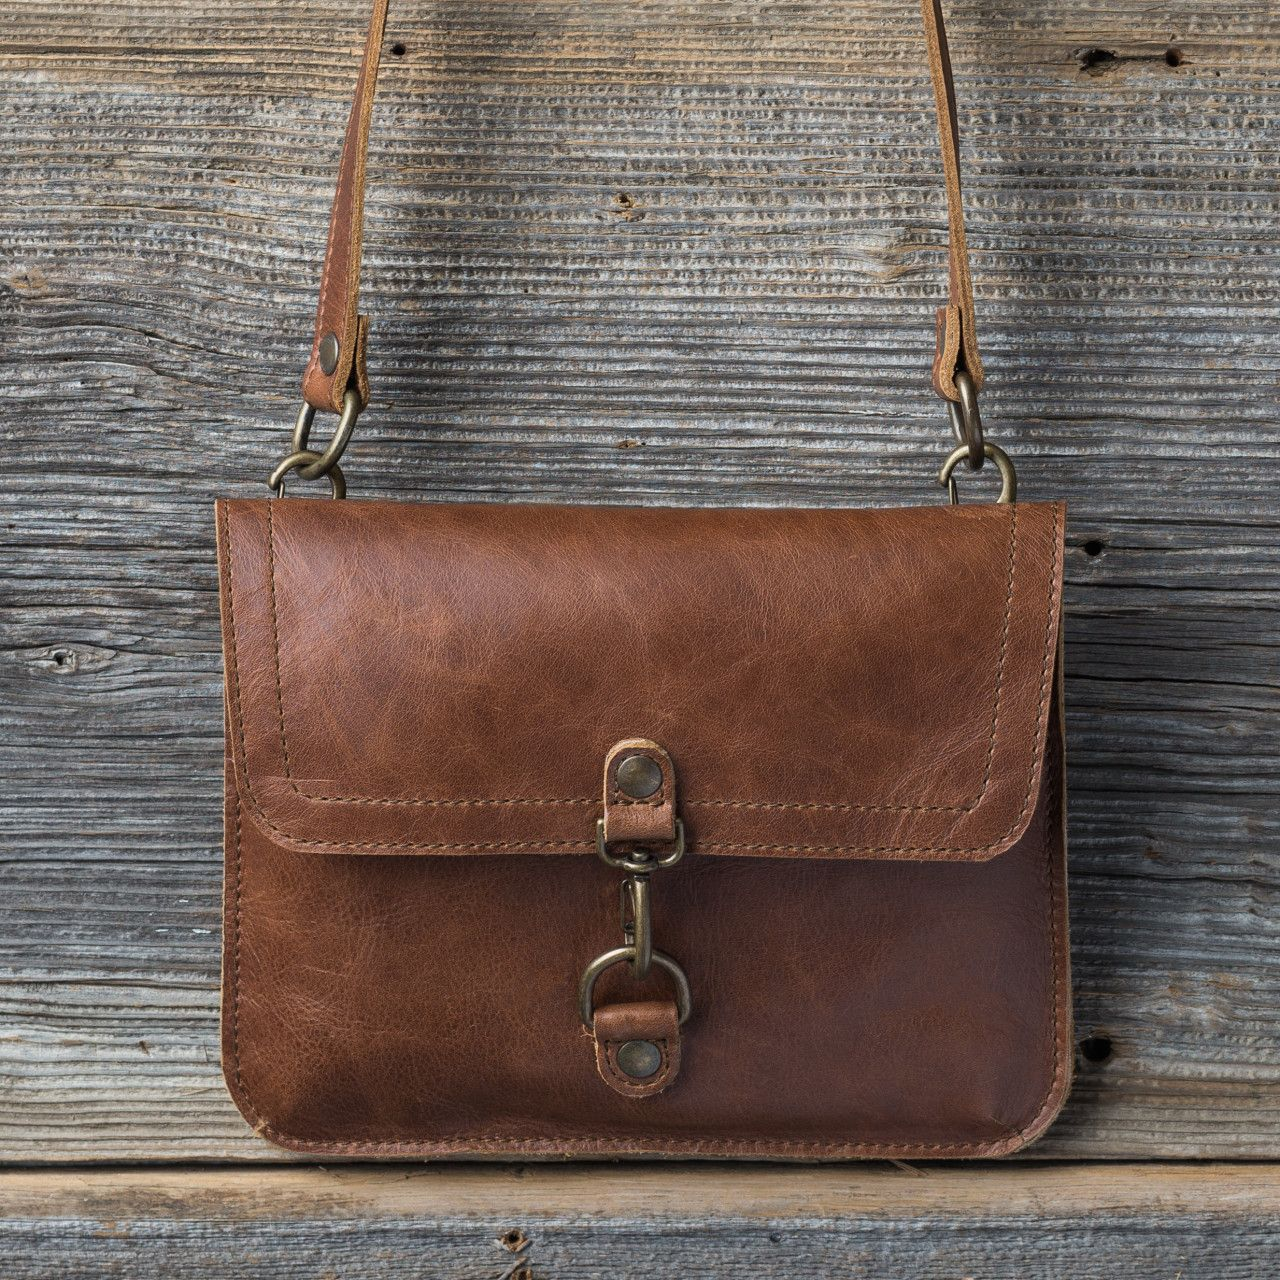 Leather Overnight Duffel Bag in caramel brown